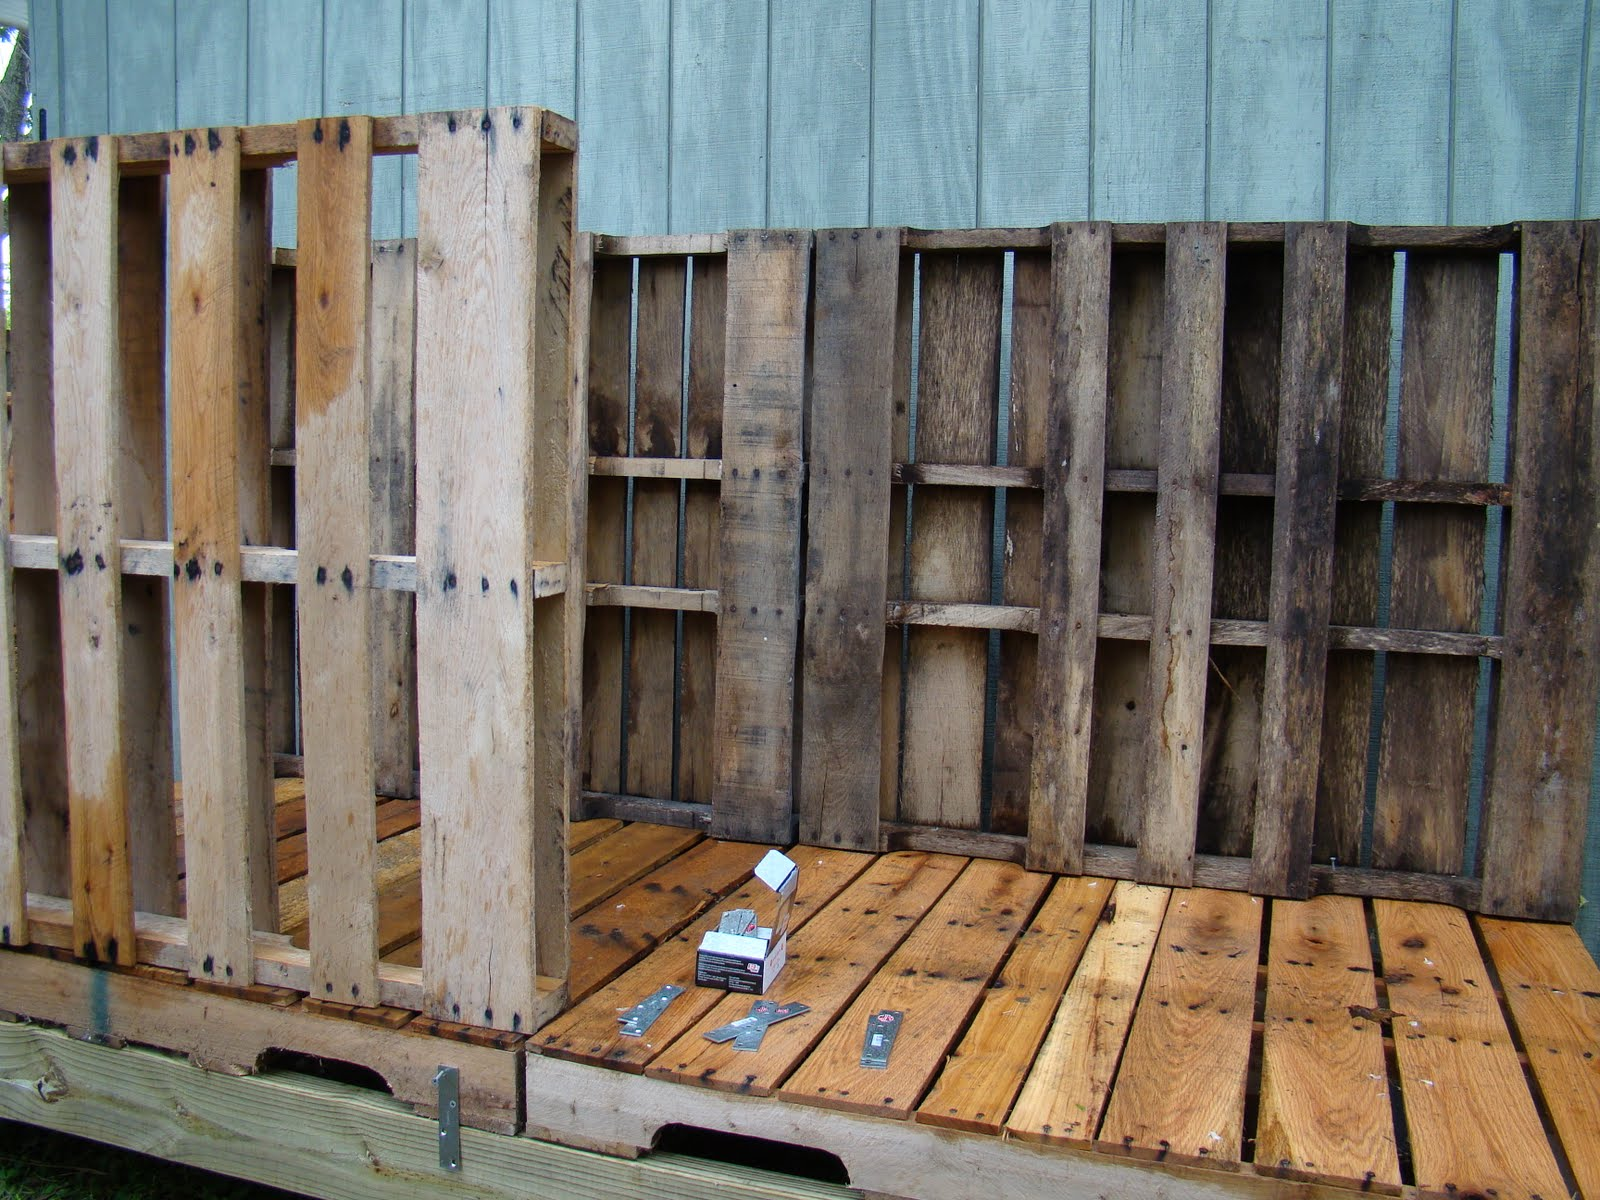 Cool coops pallet coop community chickens Chicken coop from pallet wood